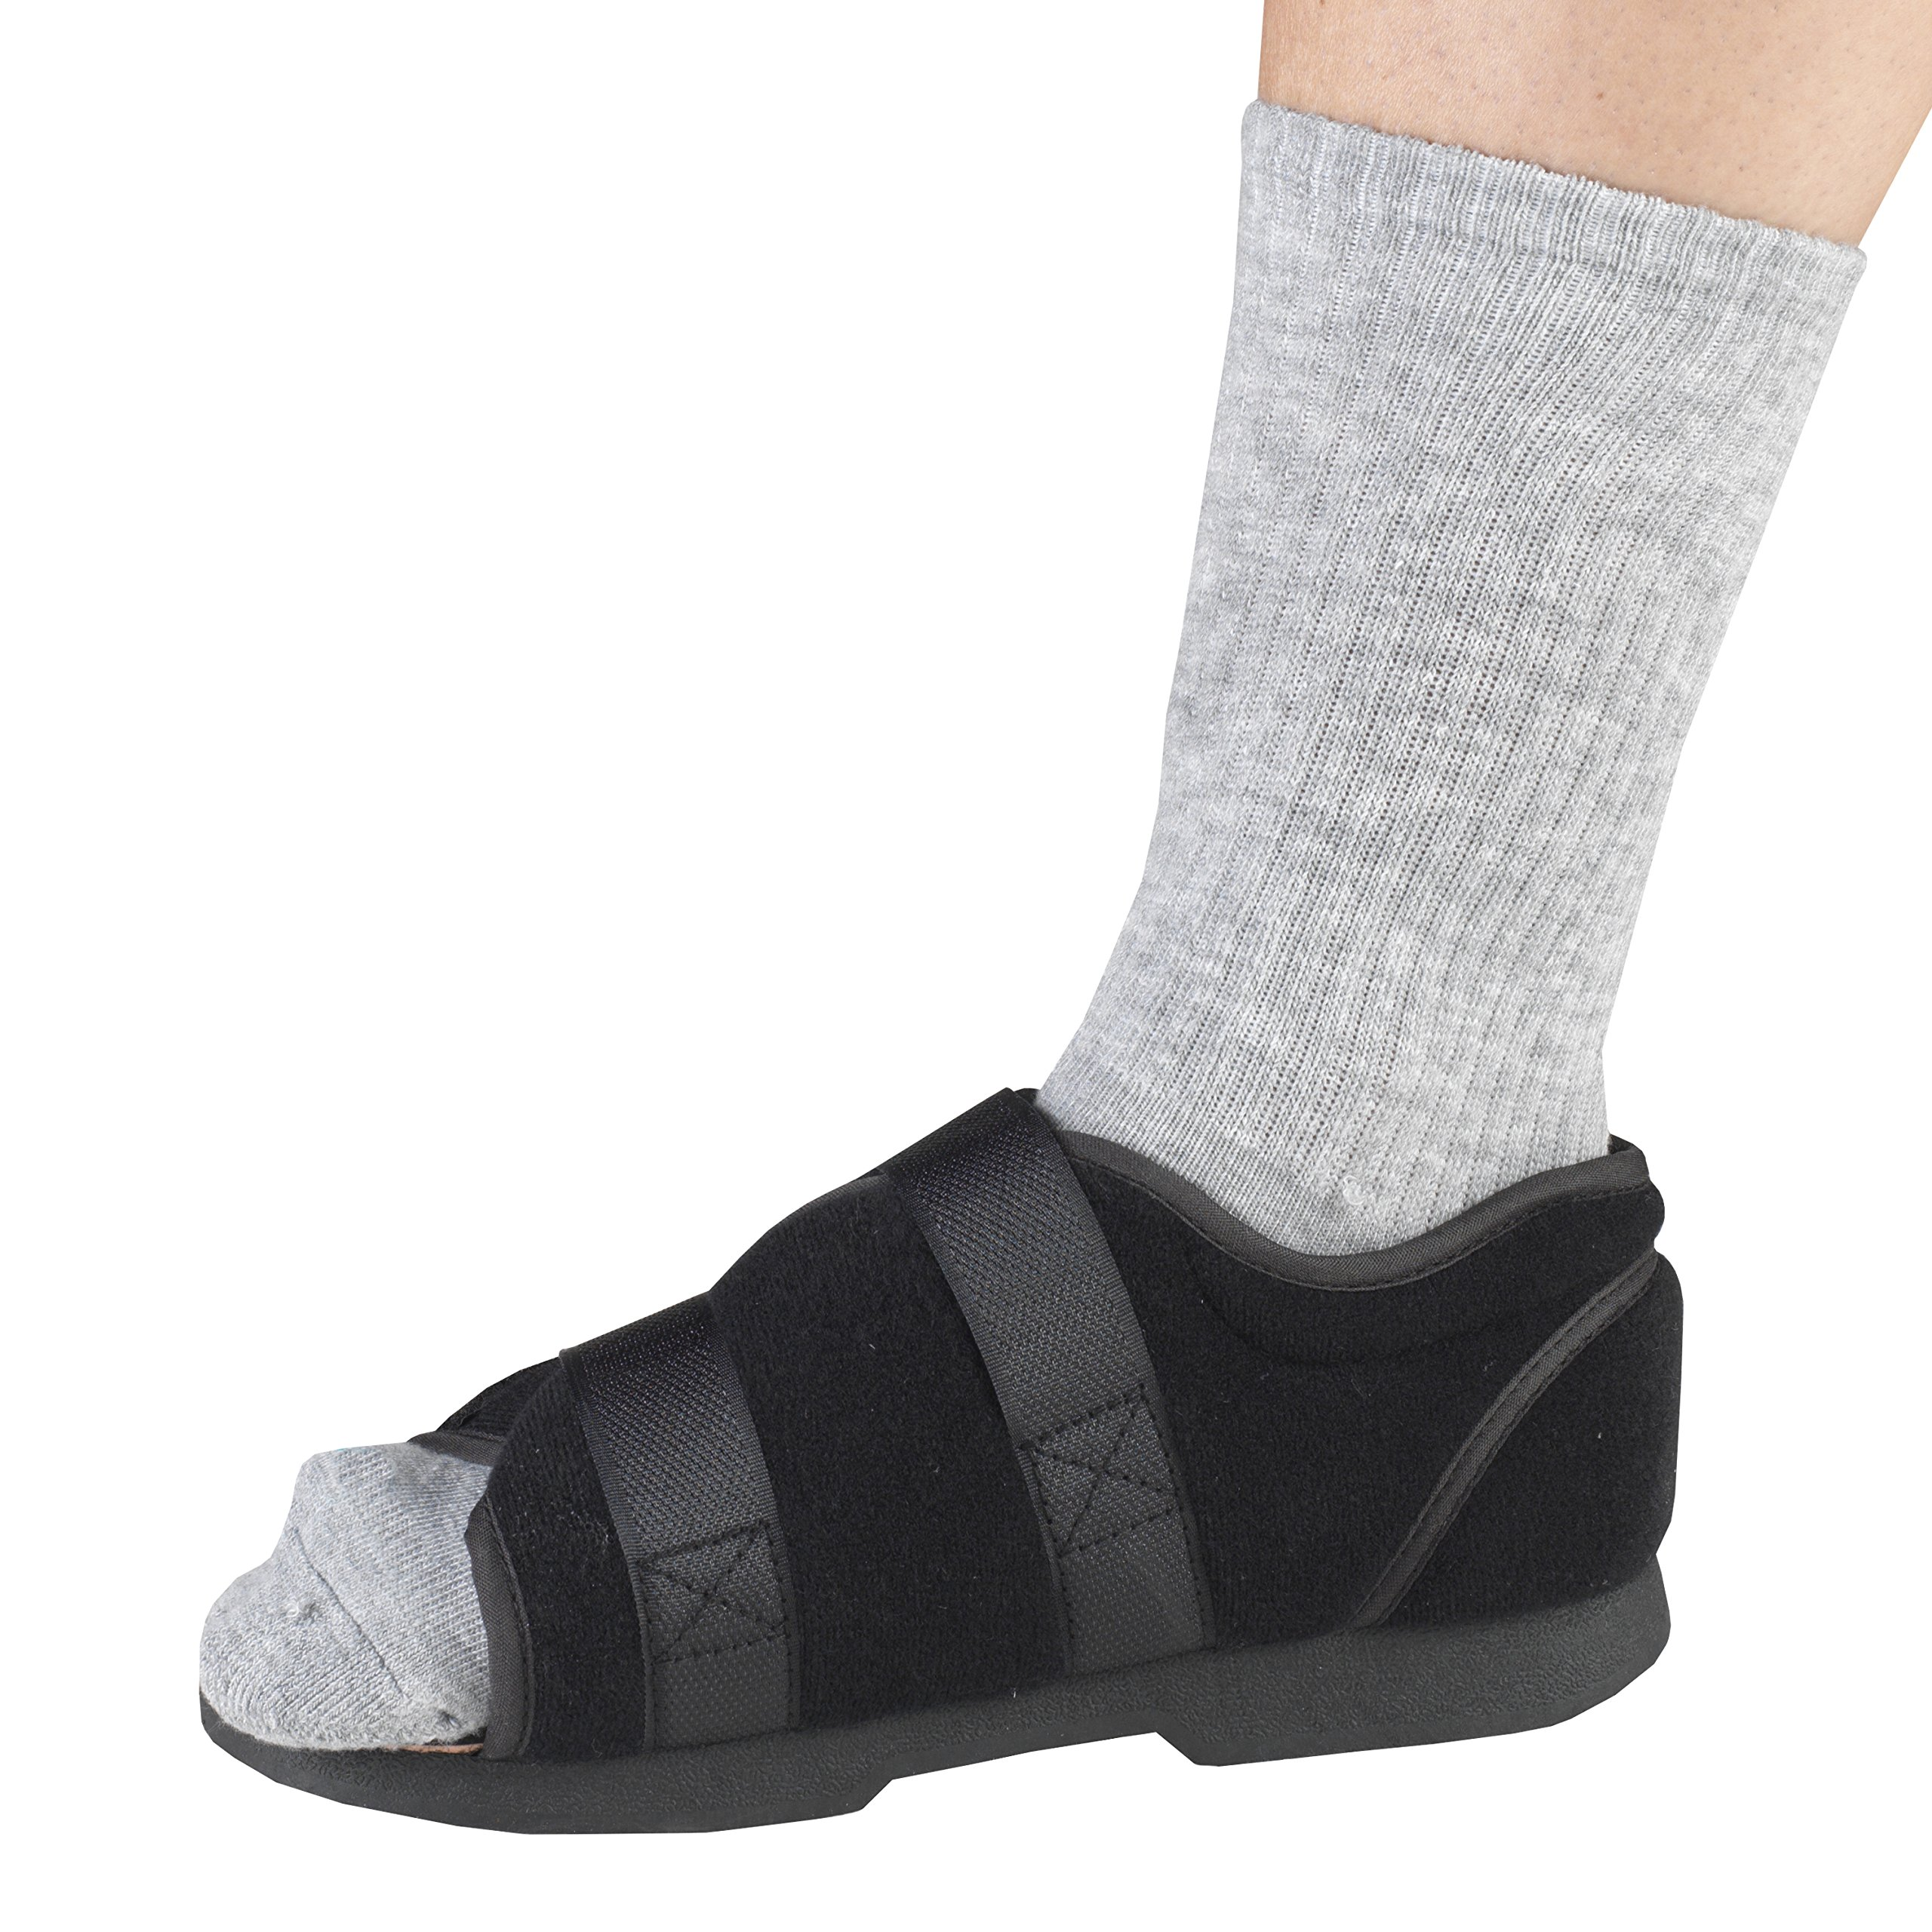 OTC Post-Op Shoe, Soft Top, for Men & Women, Medium (Women) by OTC